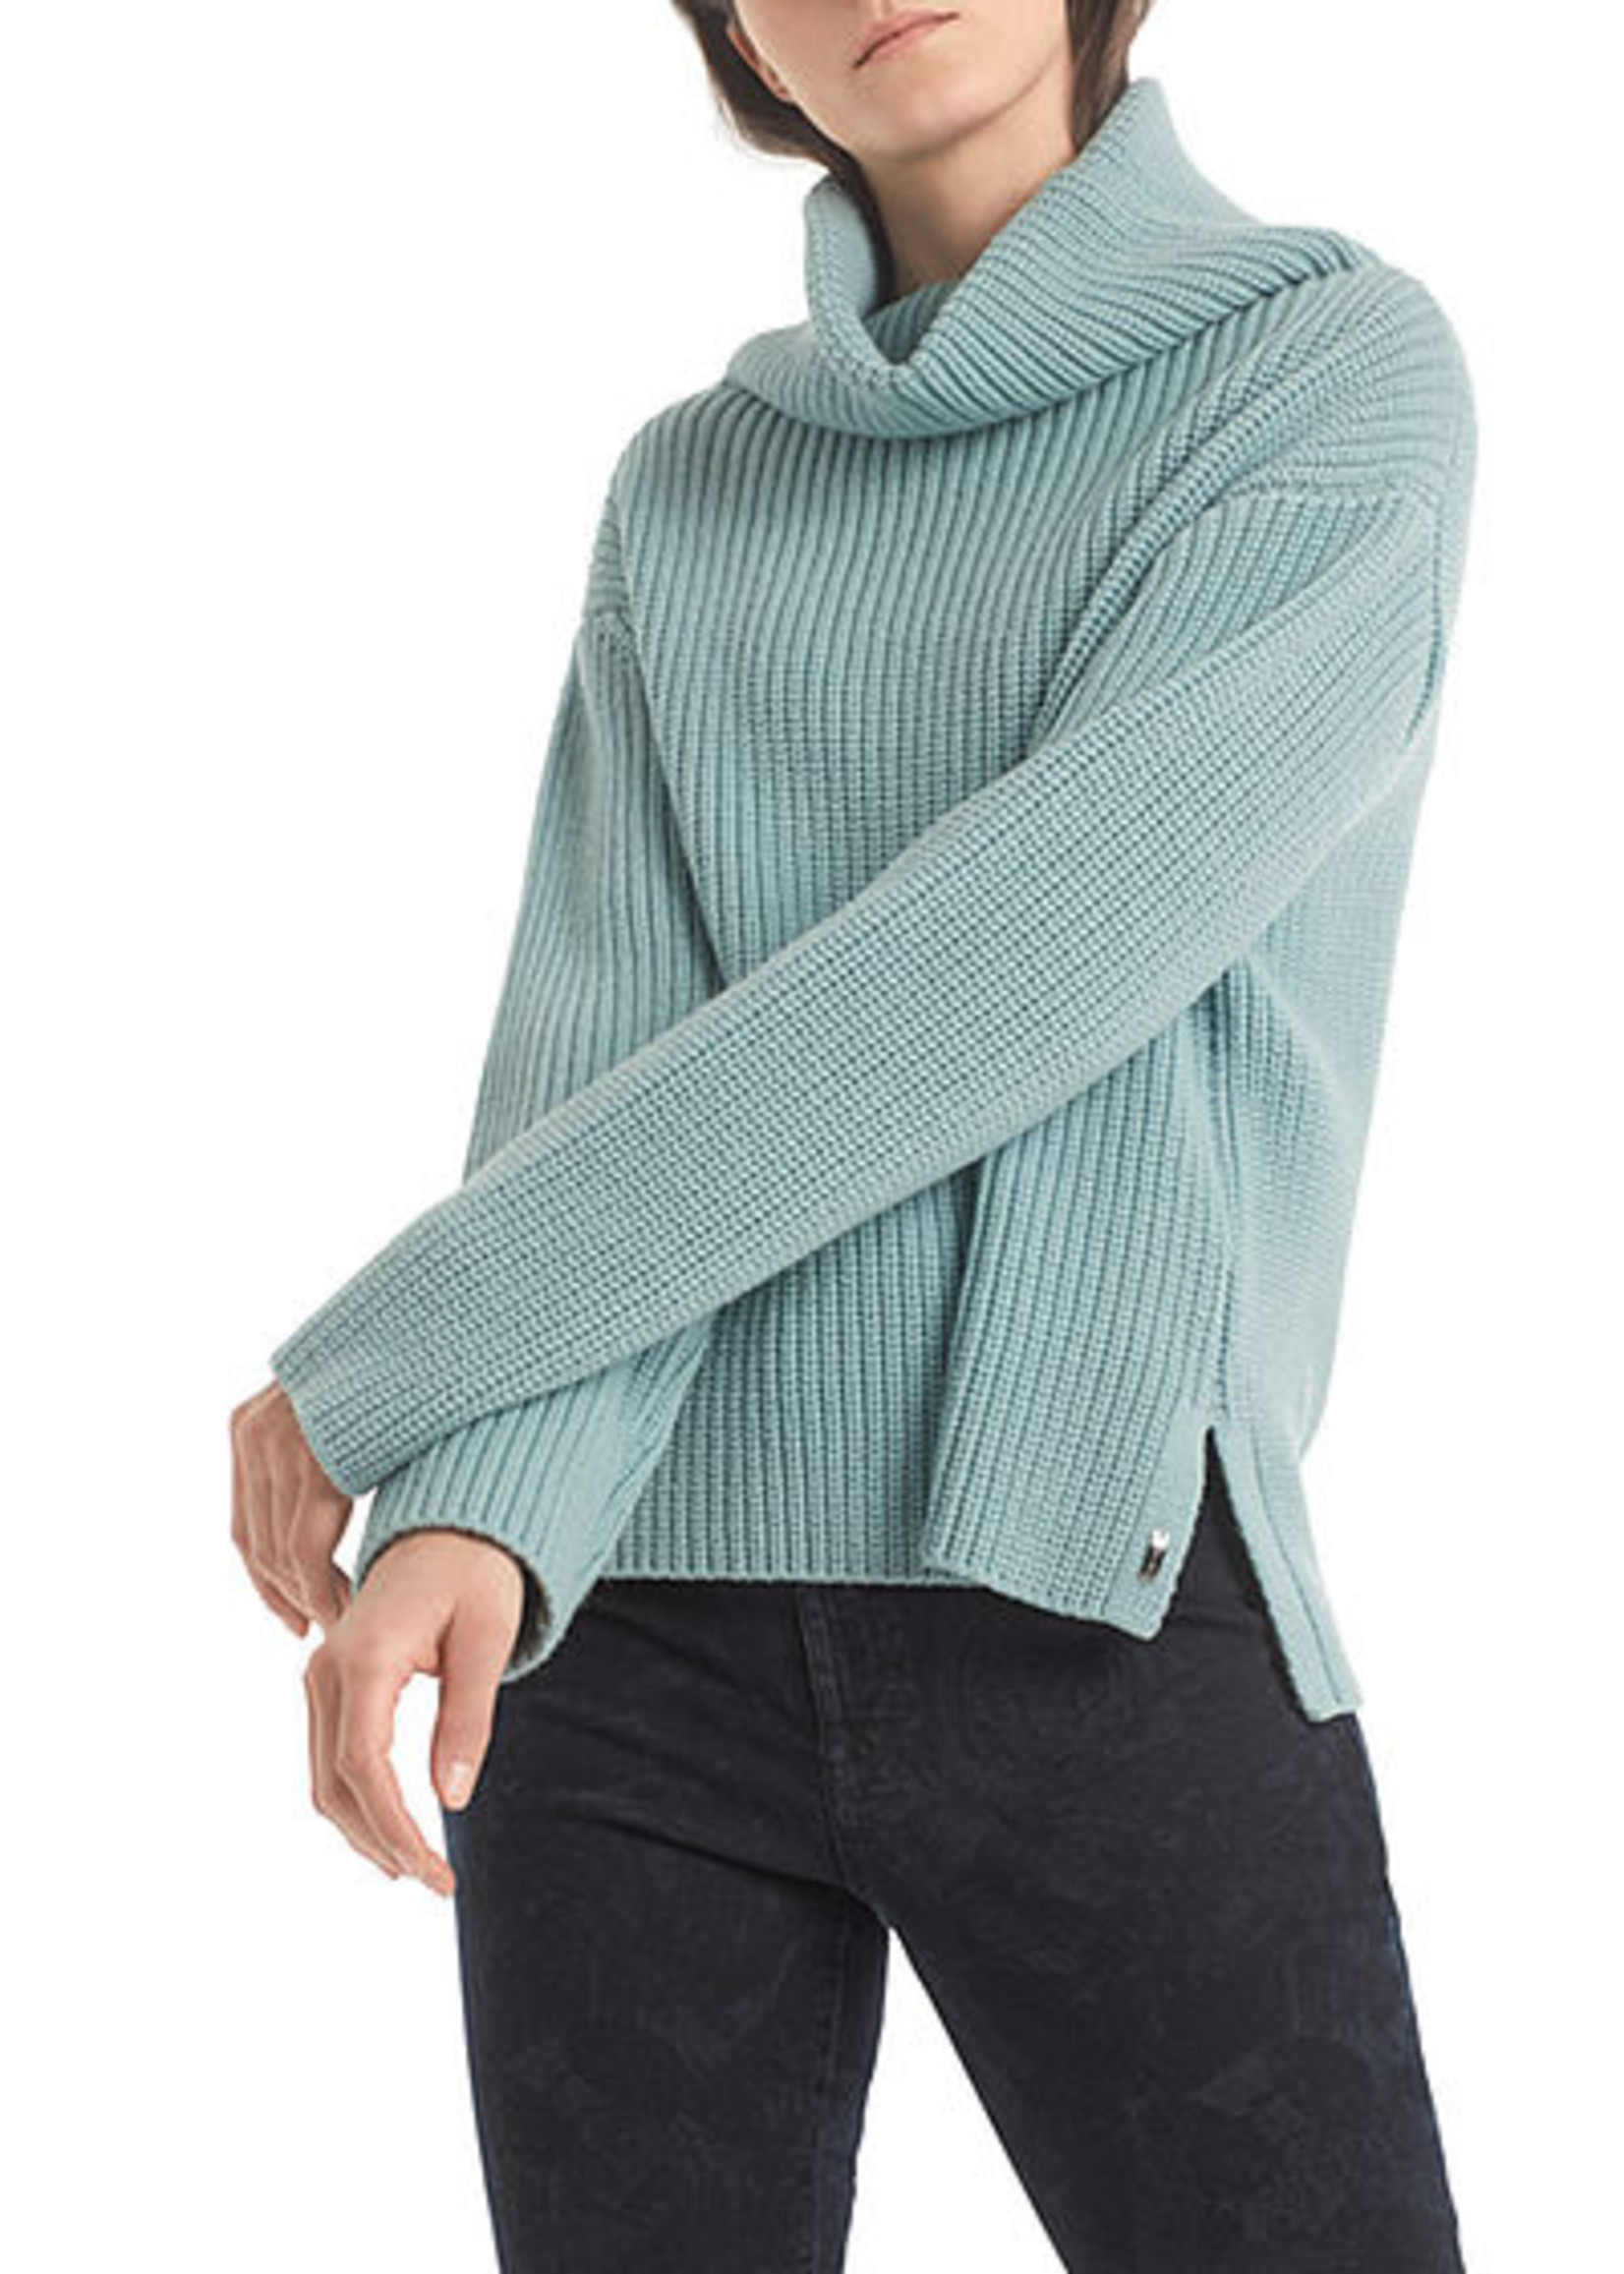 Marccain Sports Sweater RS 41.23 M18 misty blue